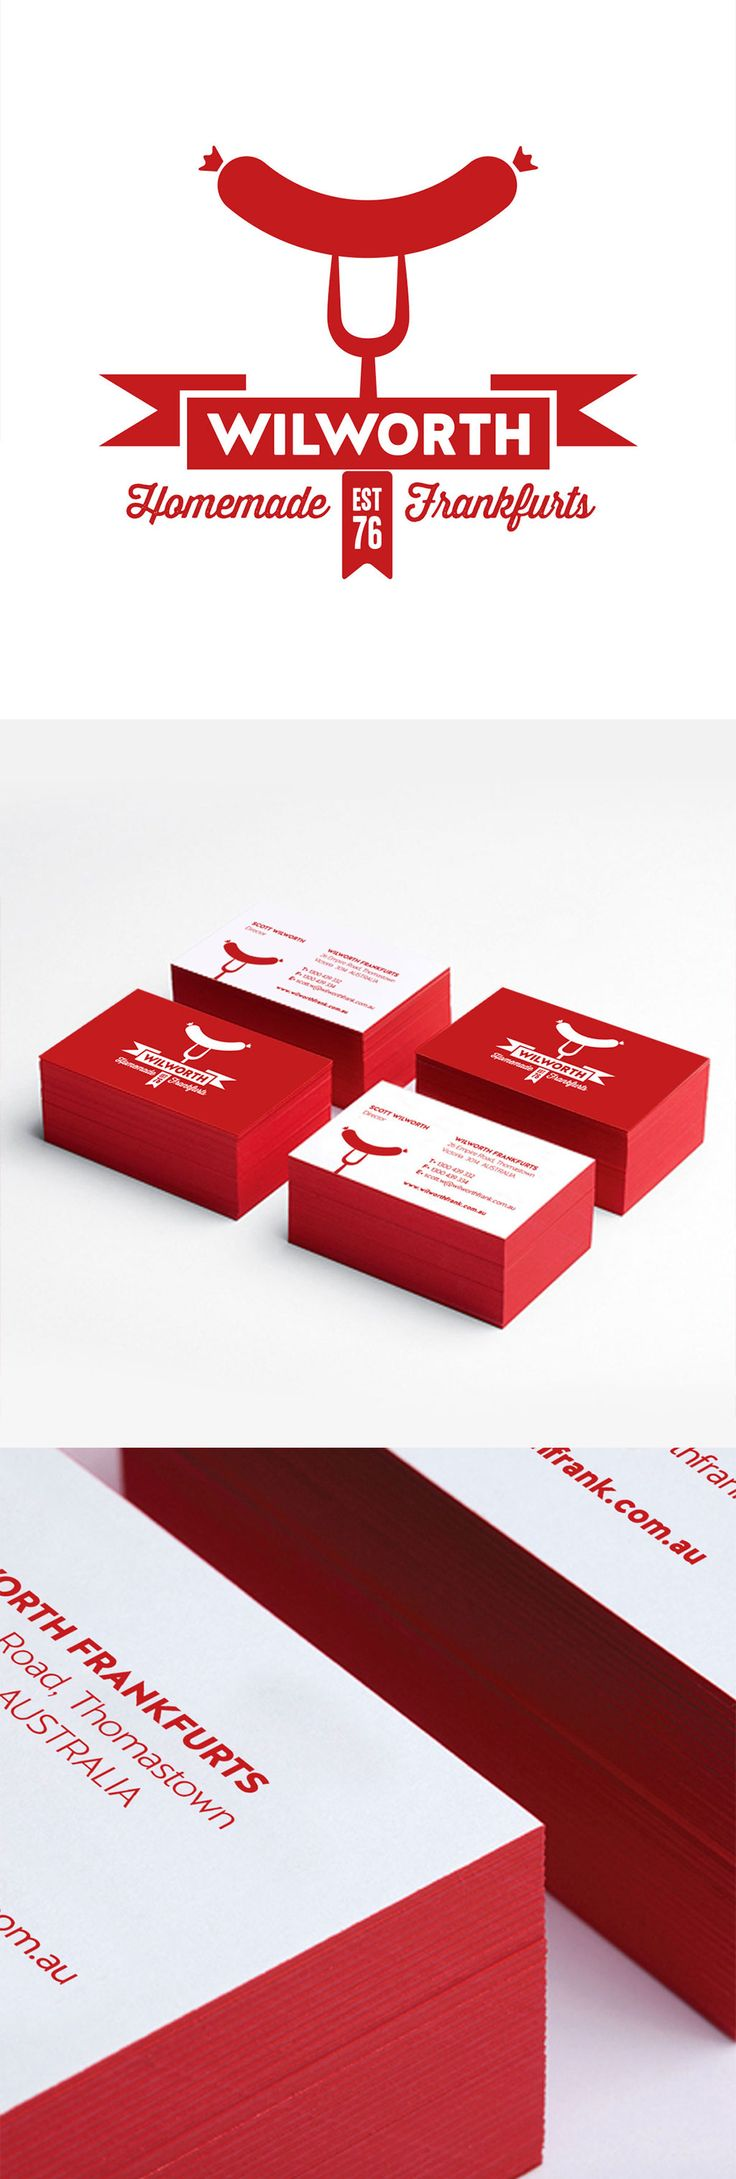 Logo and Stationery for Wilworth Frankfurts